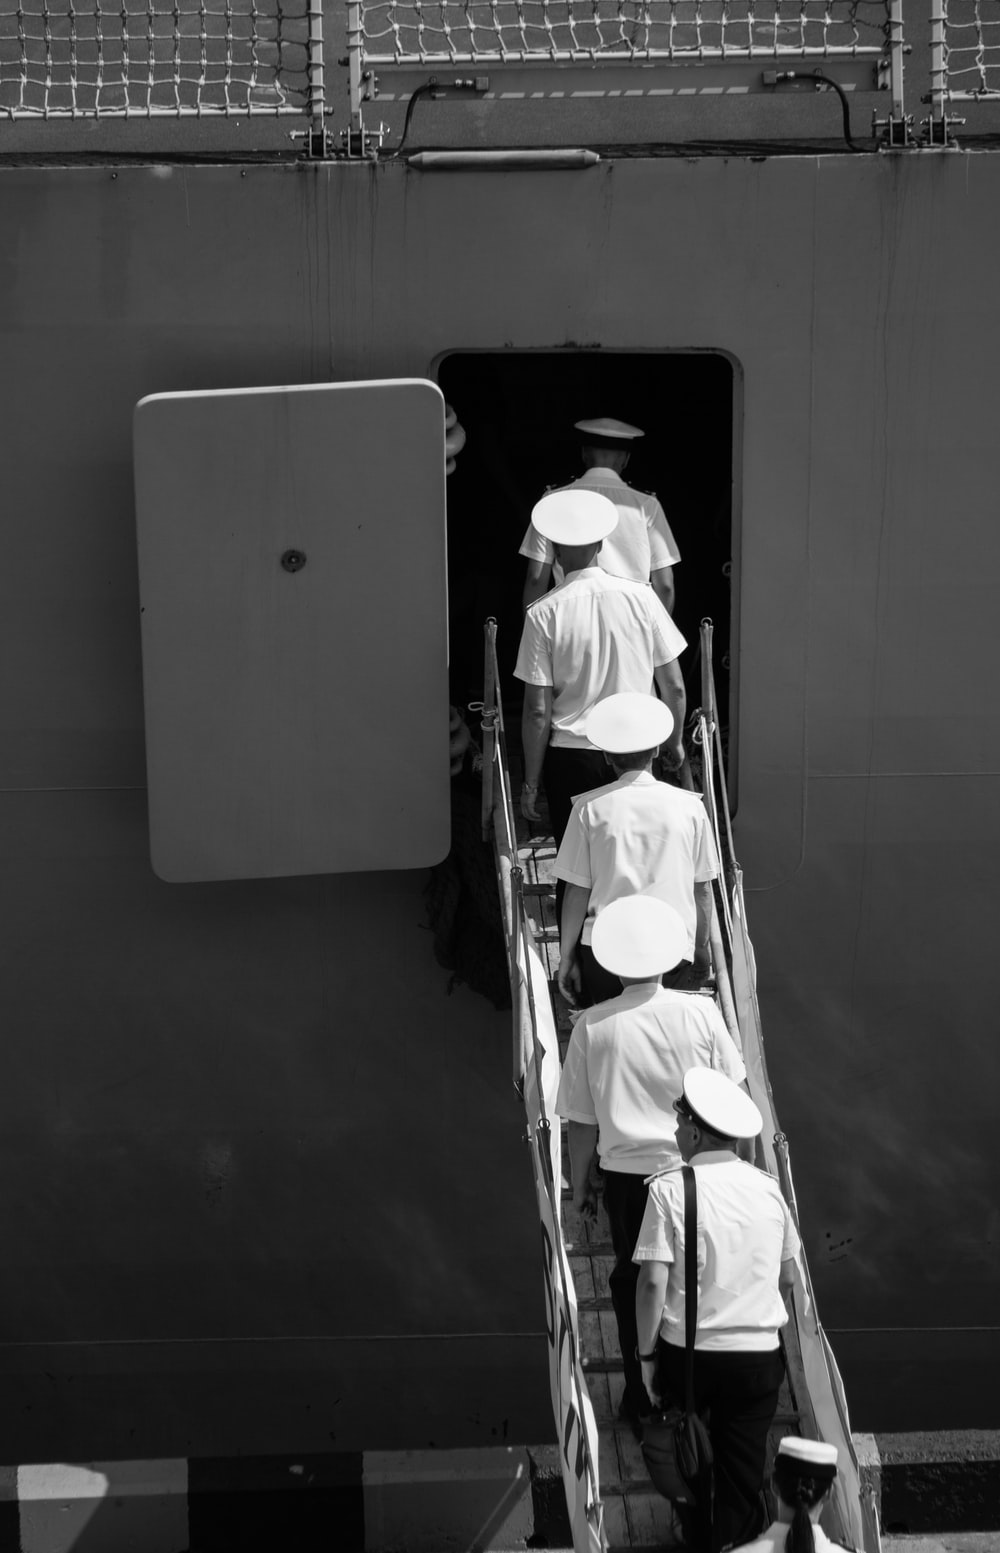 people in uniform climbing on plane stairs in grayscale photography